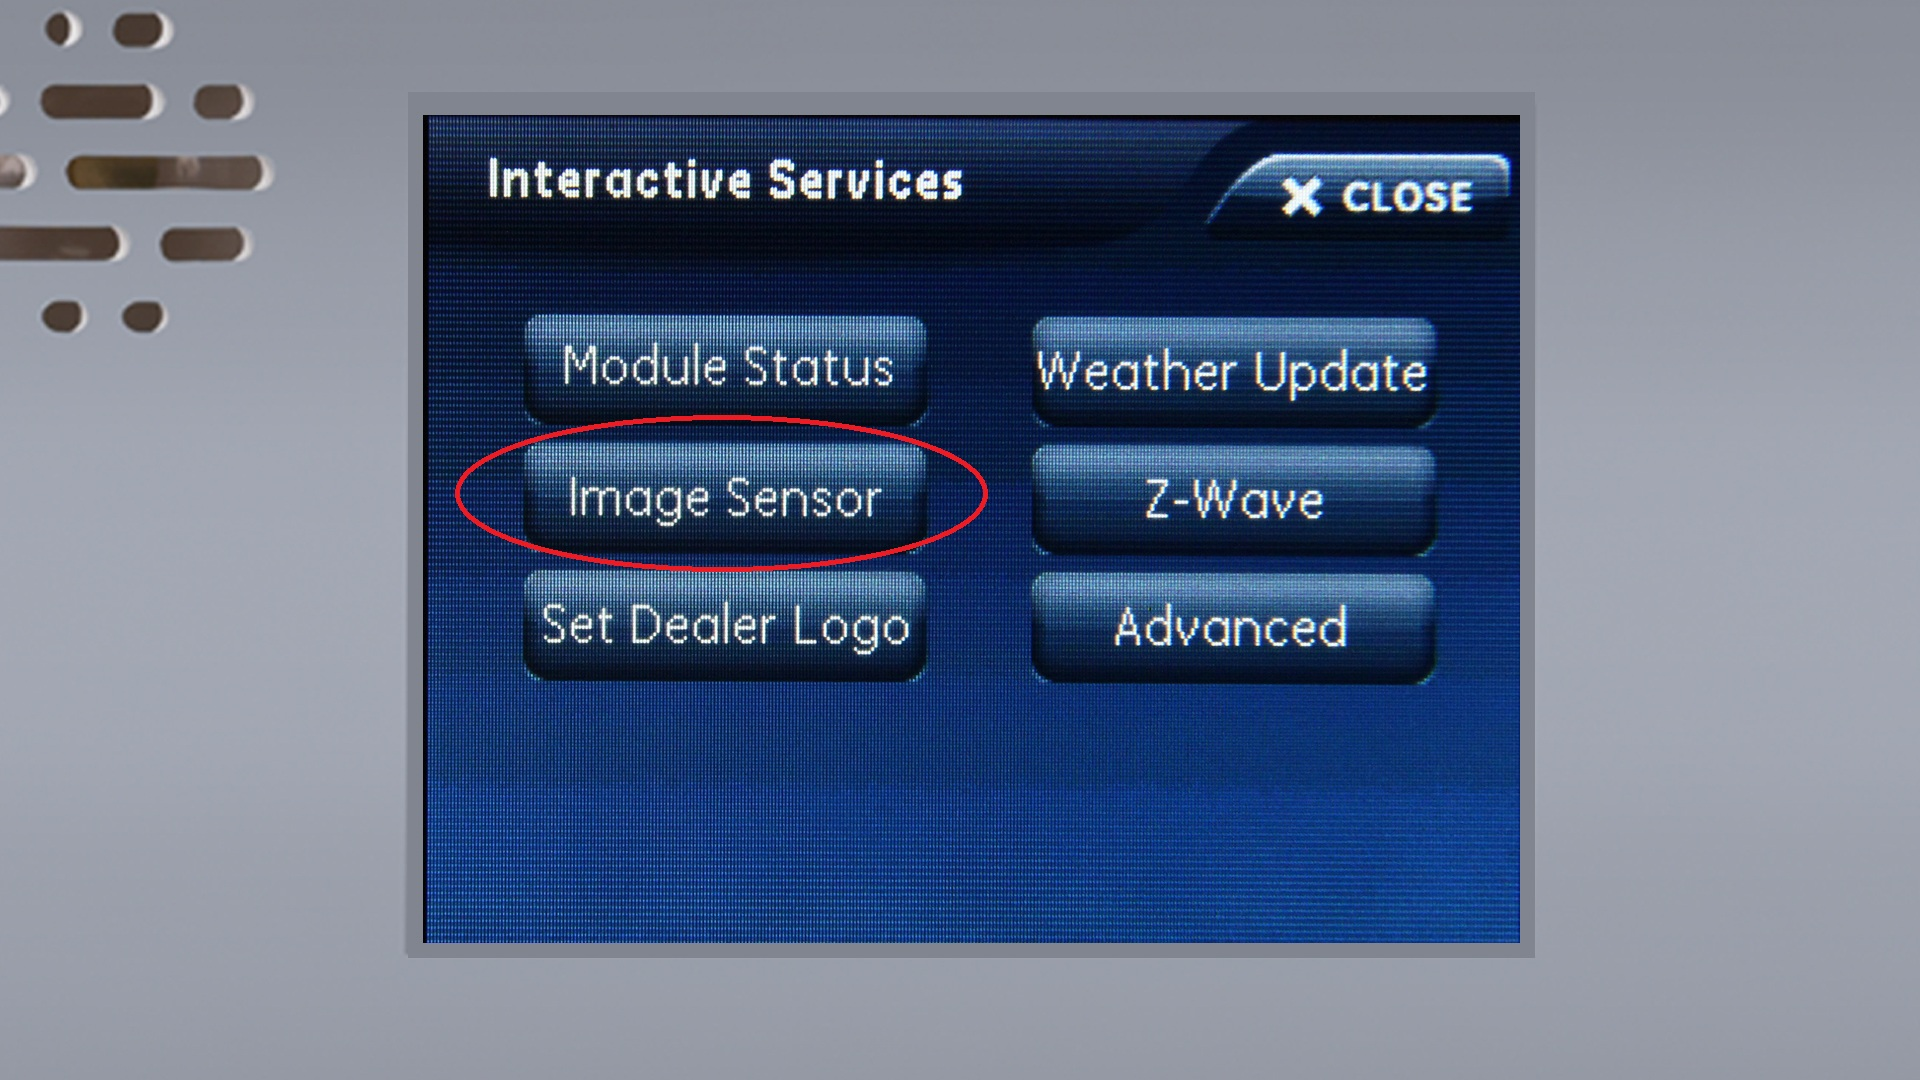 Interactive_Services_image_sensor_circled.jpg